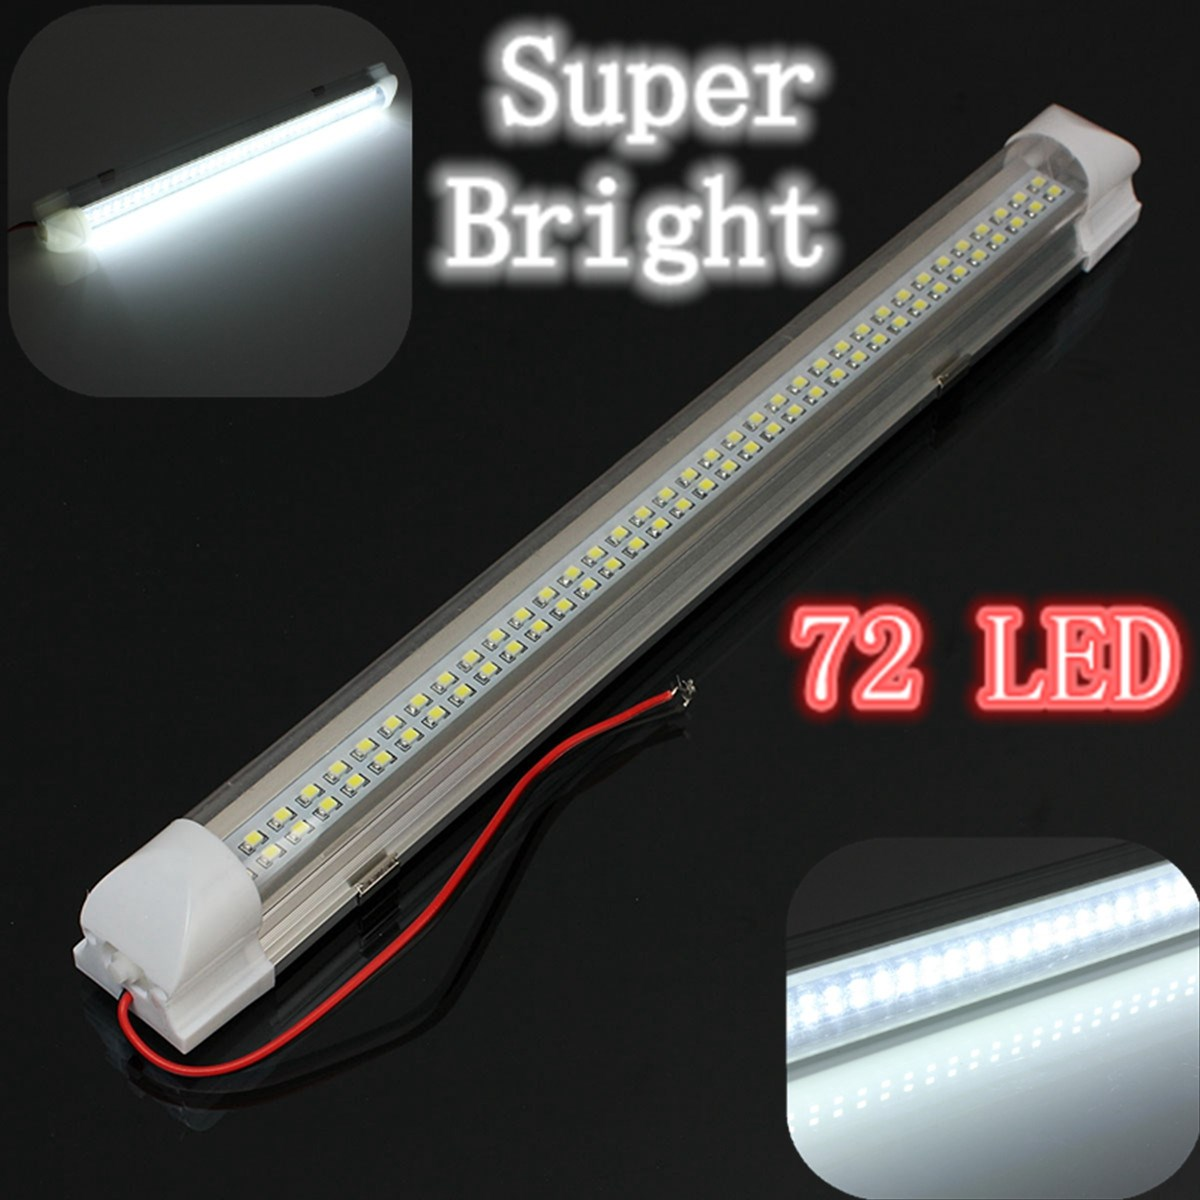 audew 12v universal car auto caravan interior 72 led white light strip bar 340mm lamp on off. Black Bedroom Furniture Sets. Home Design Ideas